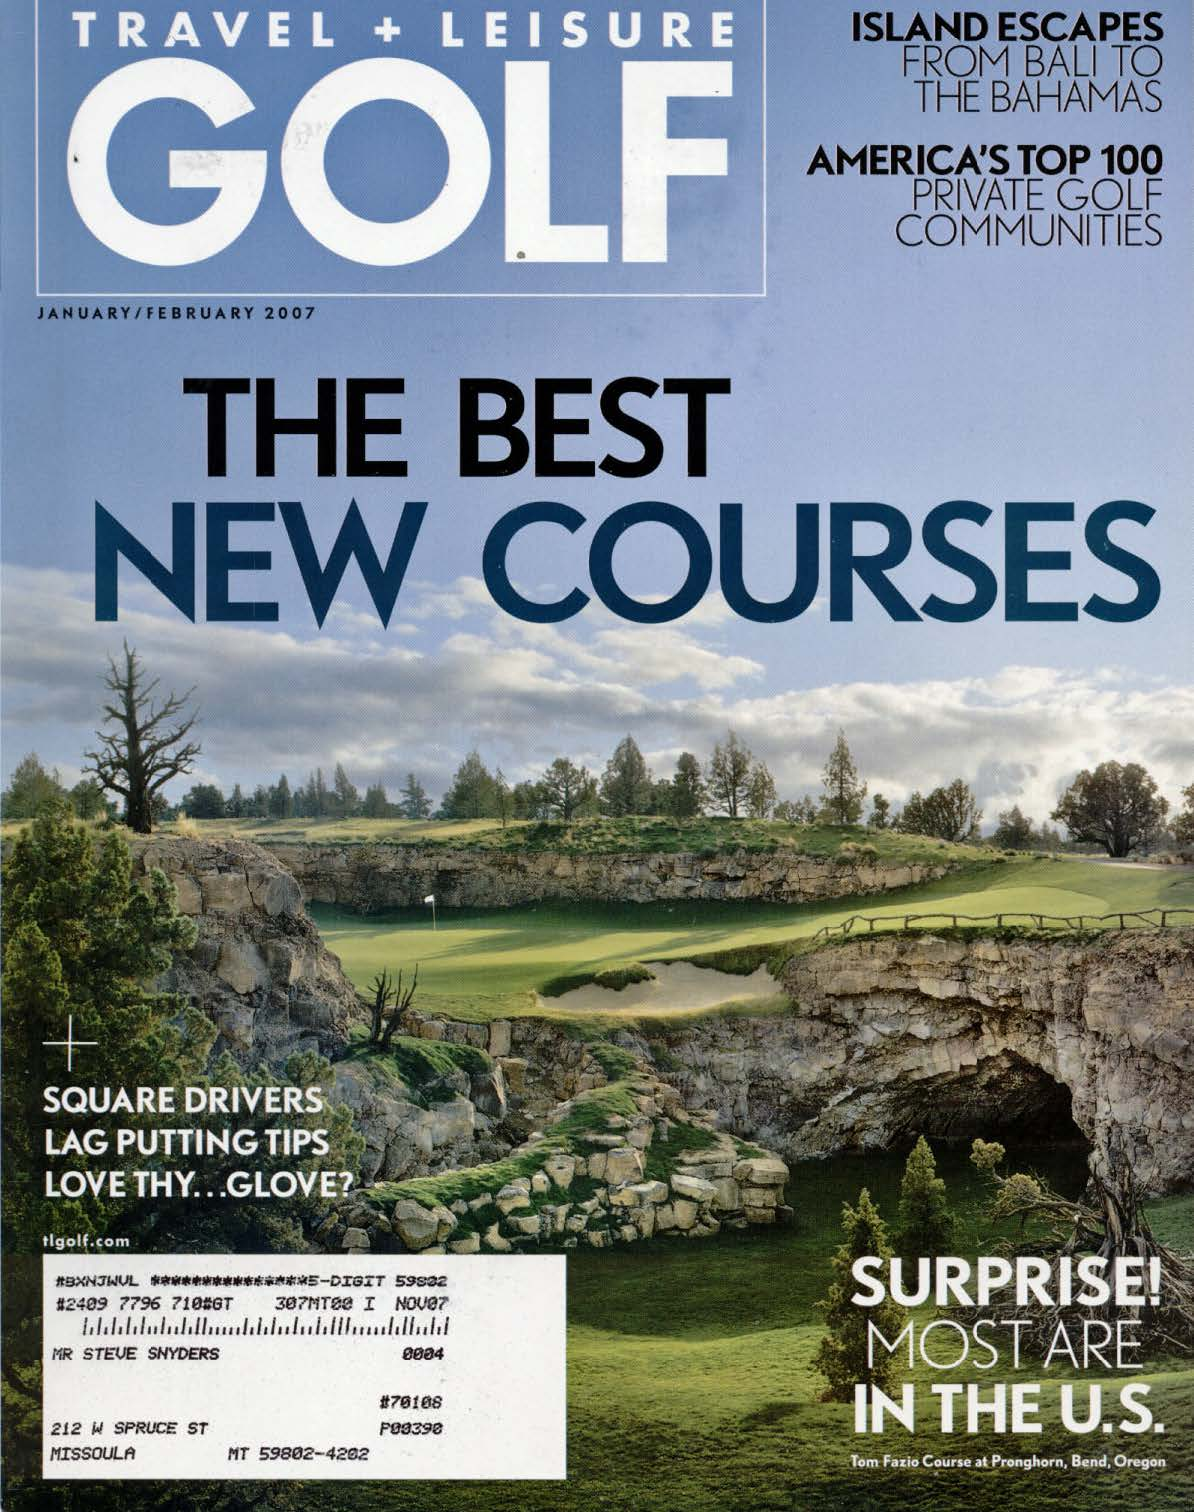 Pages from t&l golf.jpg